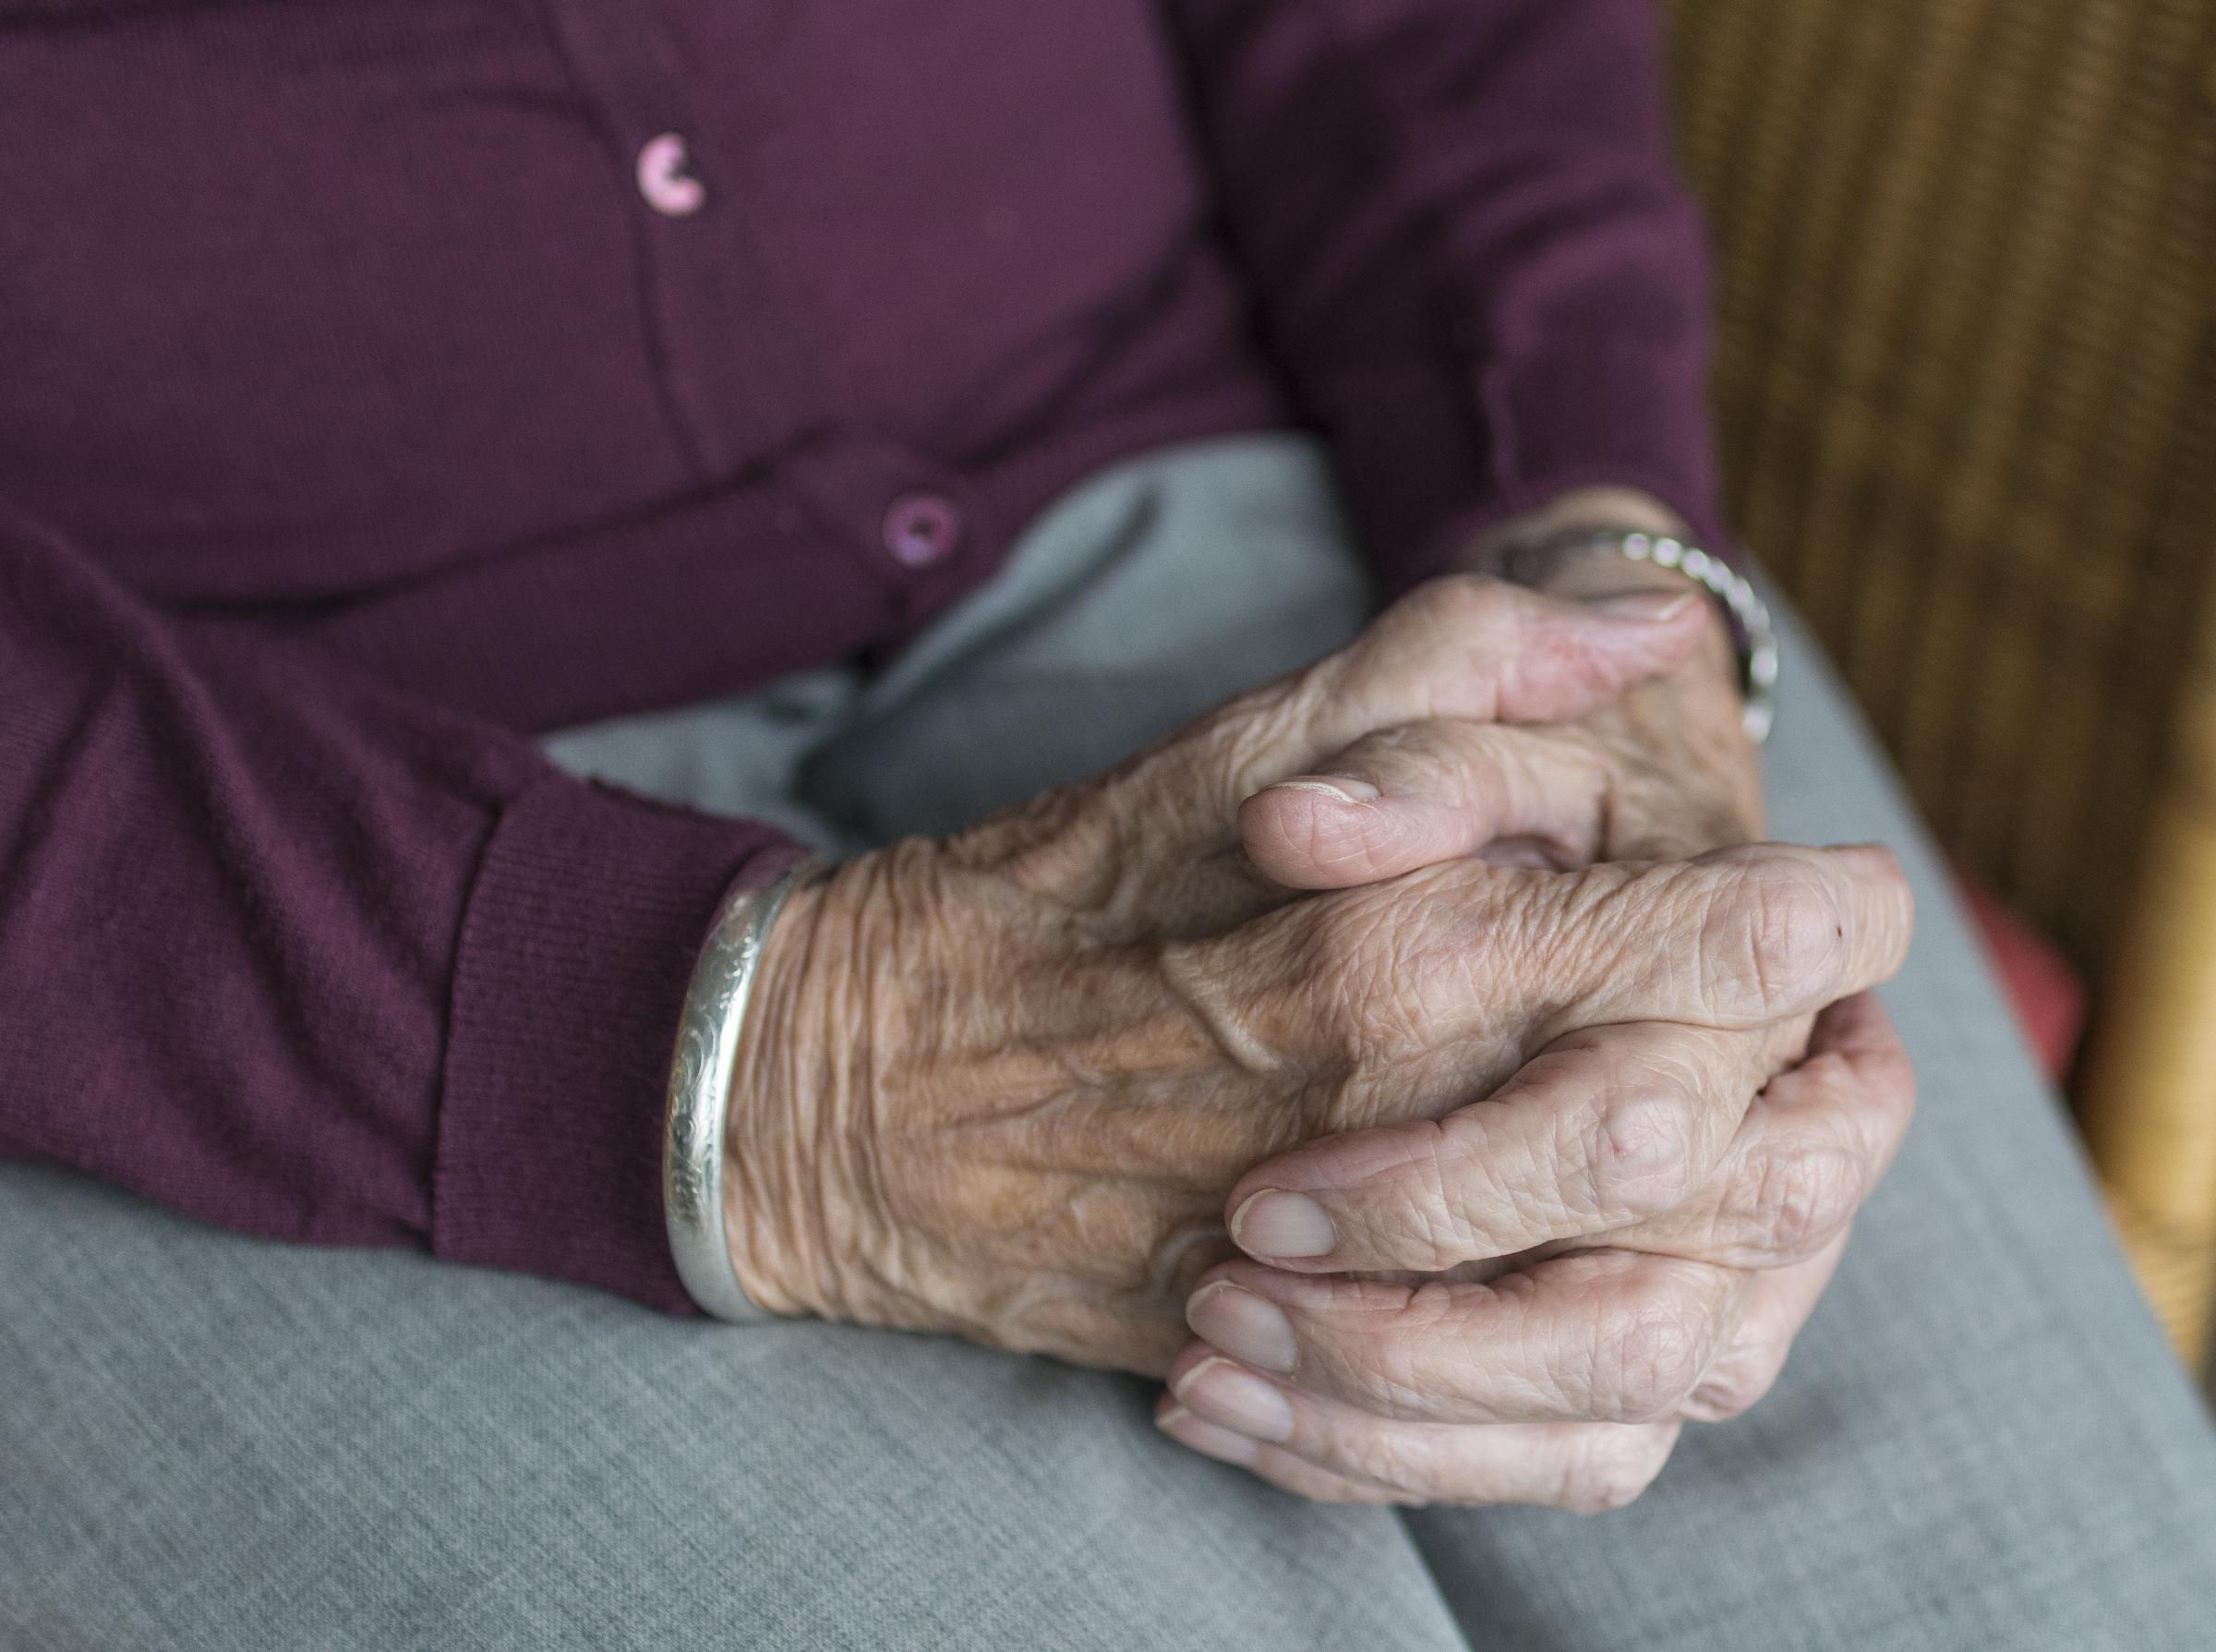 Stock picture taken from pixabay.com. An elderly woman's hands.